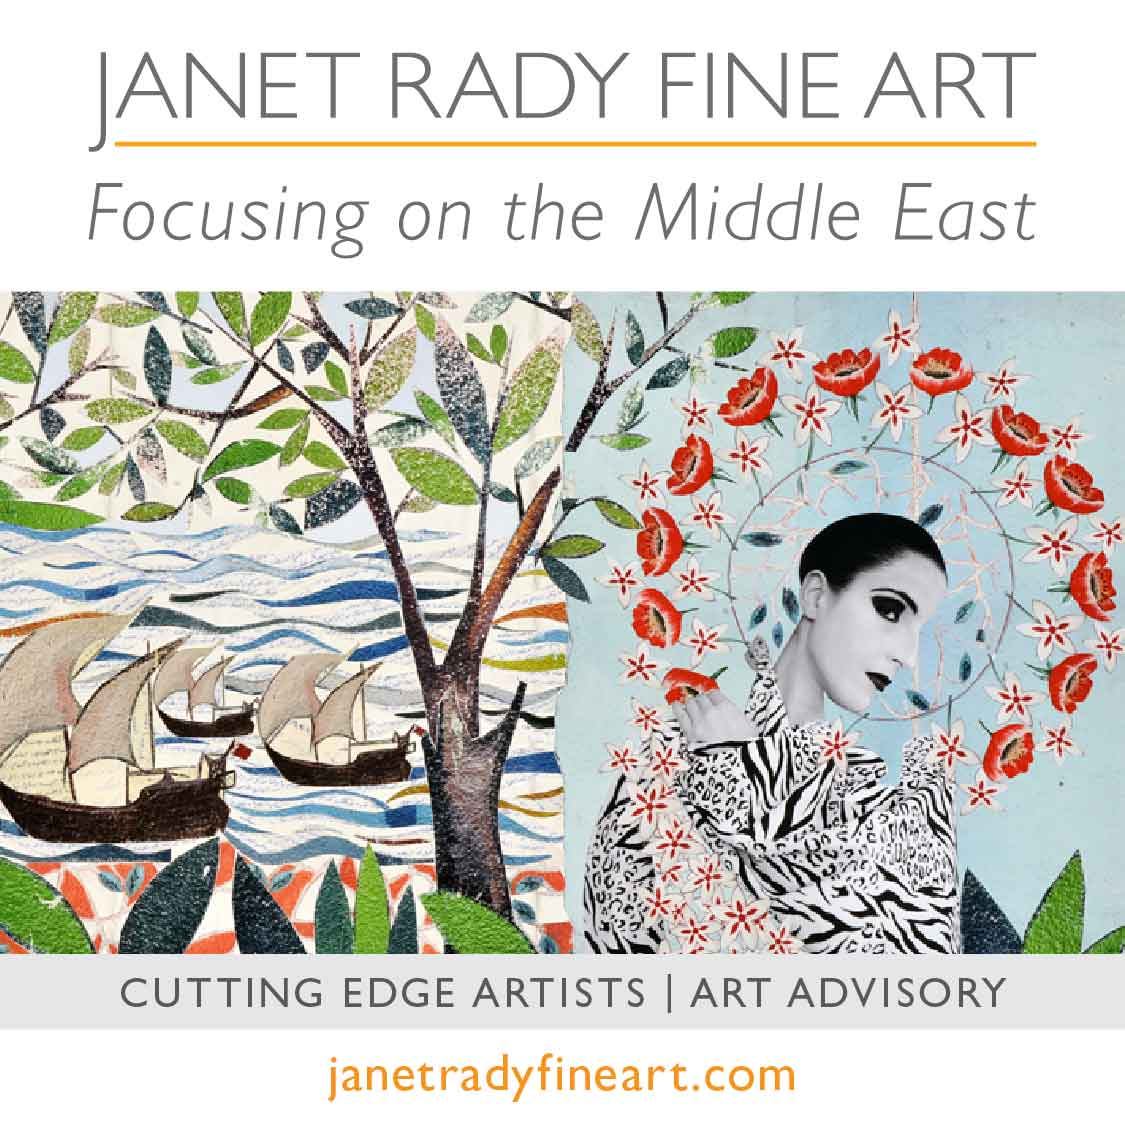 Janet Rady Fine Art Cutting Edge Artists | Art Avisory